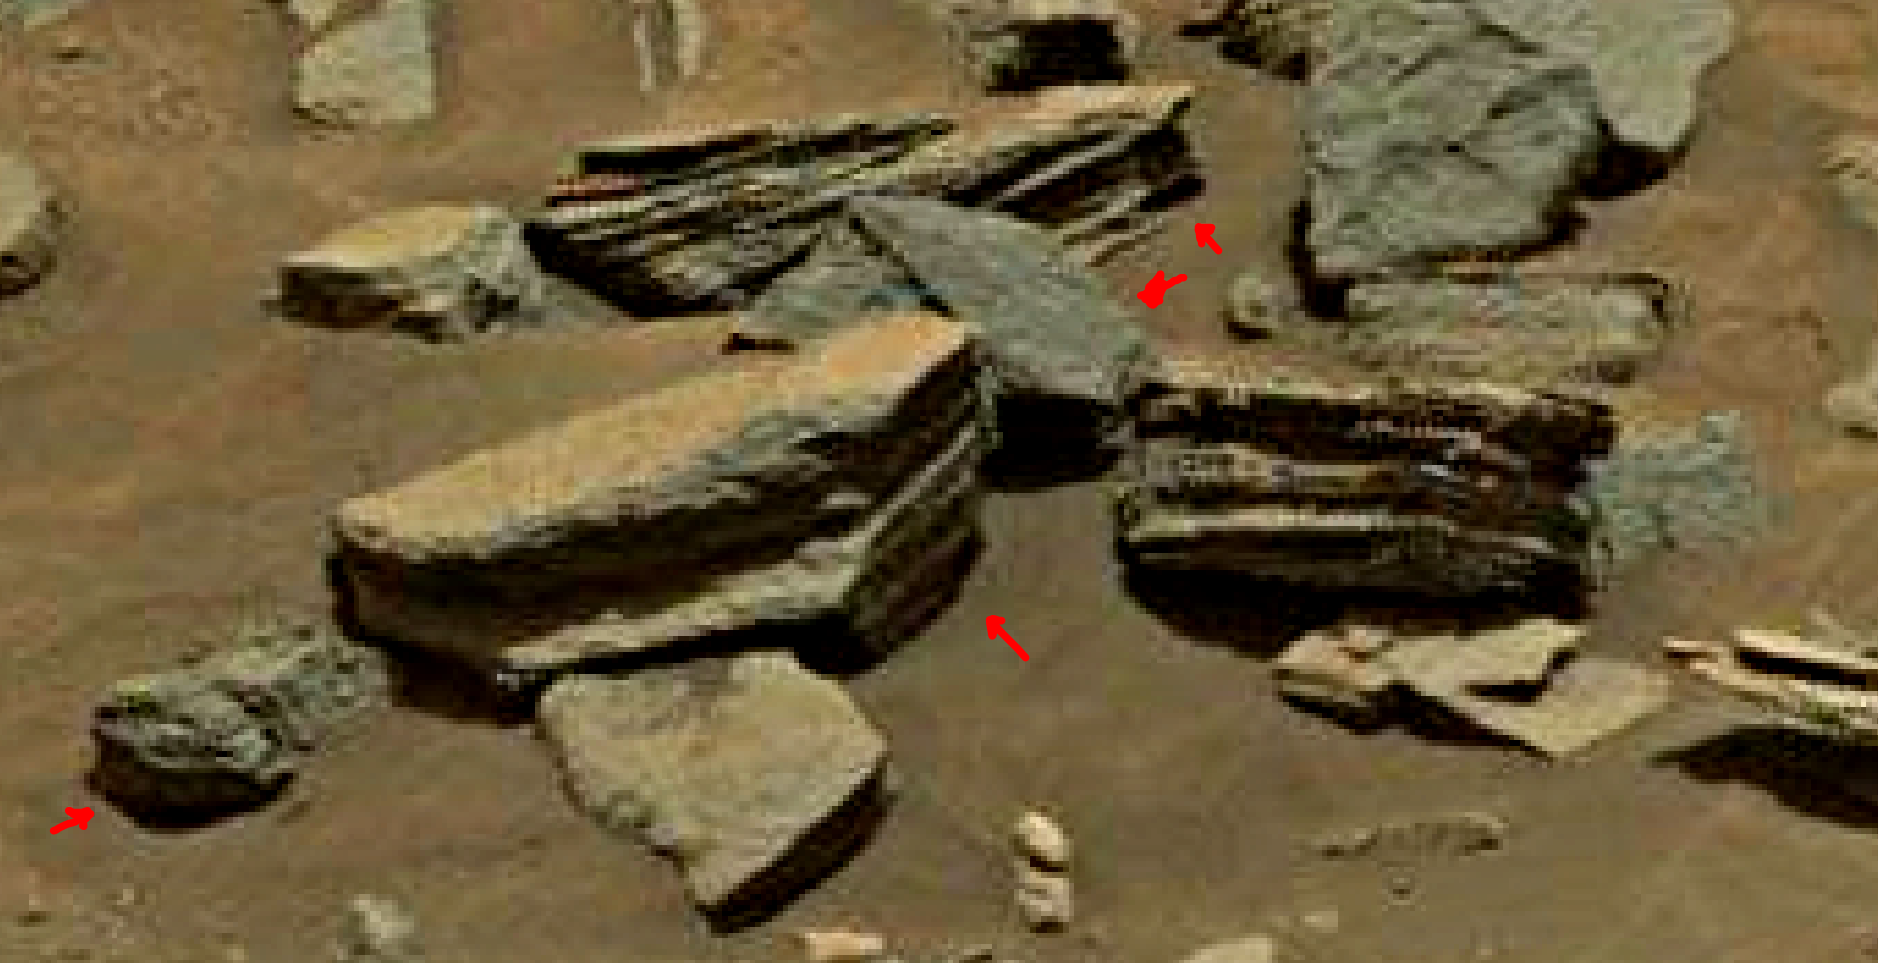 mars-sol-1455-anomaly-artifacts-5-was-life-on-mars